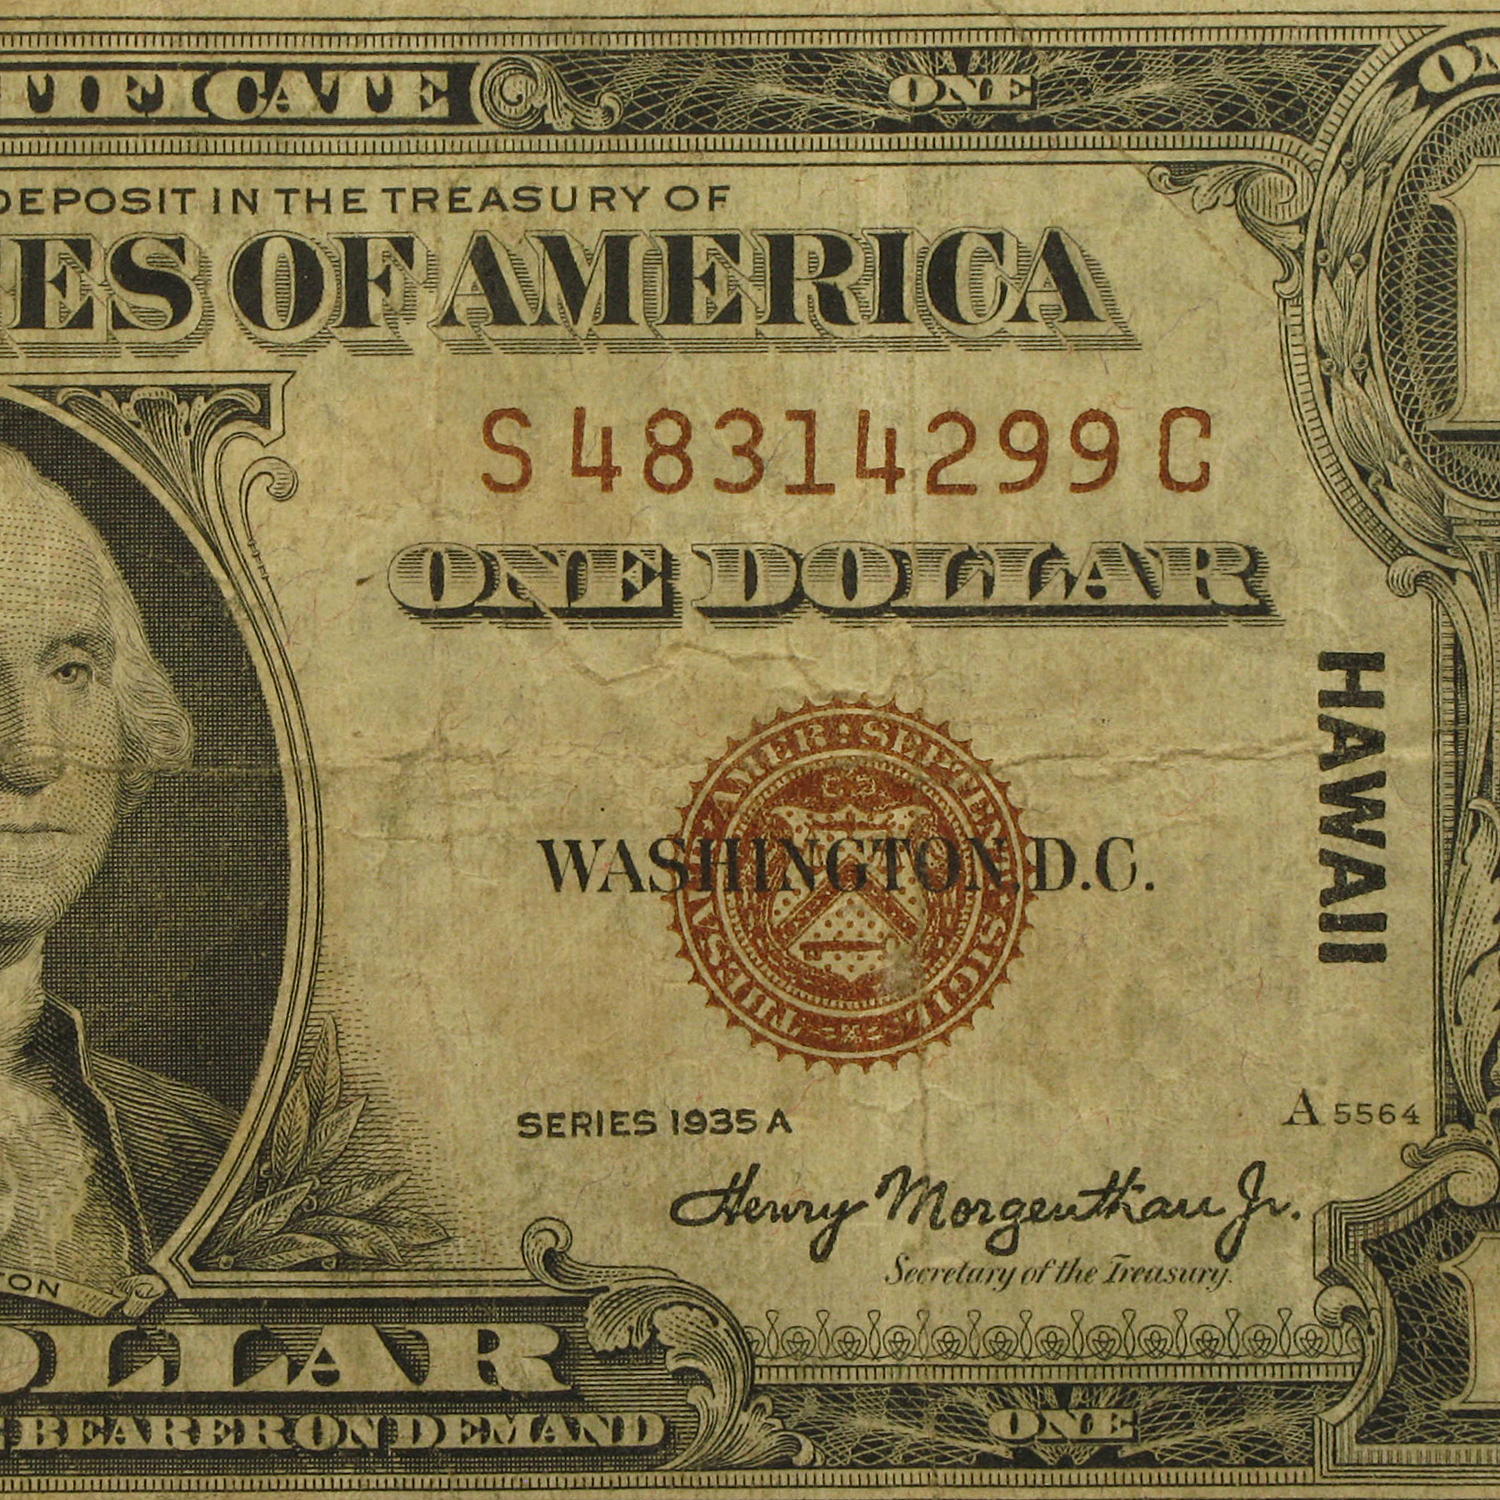 1935-A $1 Silver Certificate Brown Seal (HAWAII) - (Very Good)